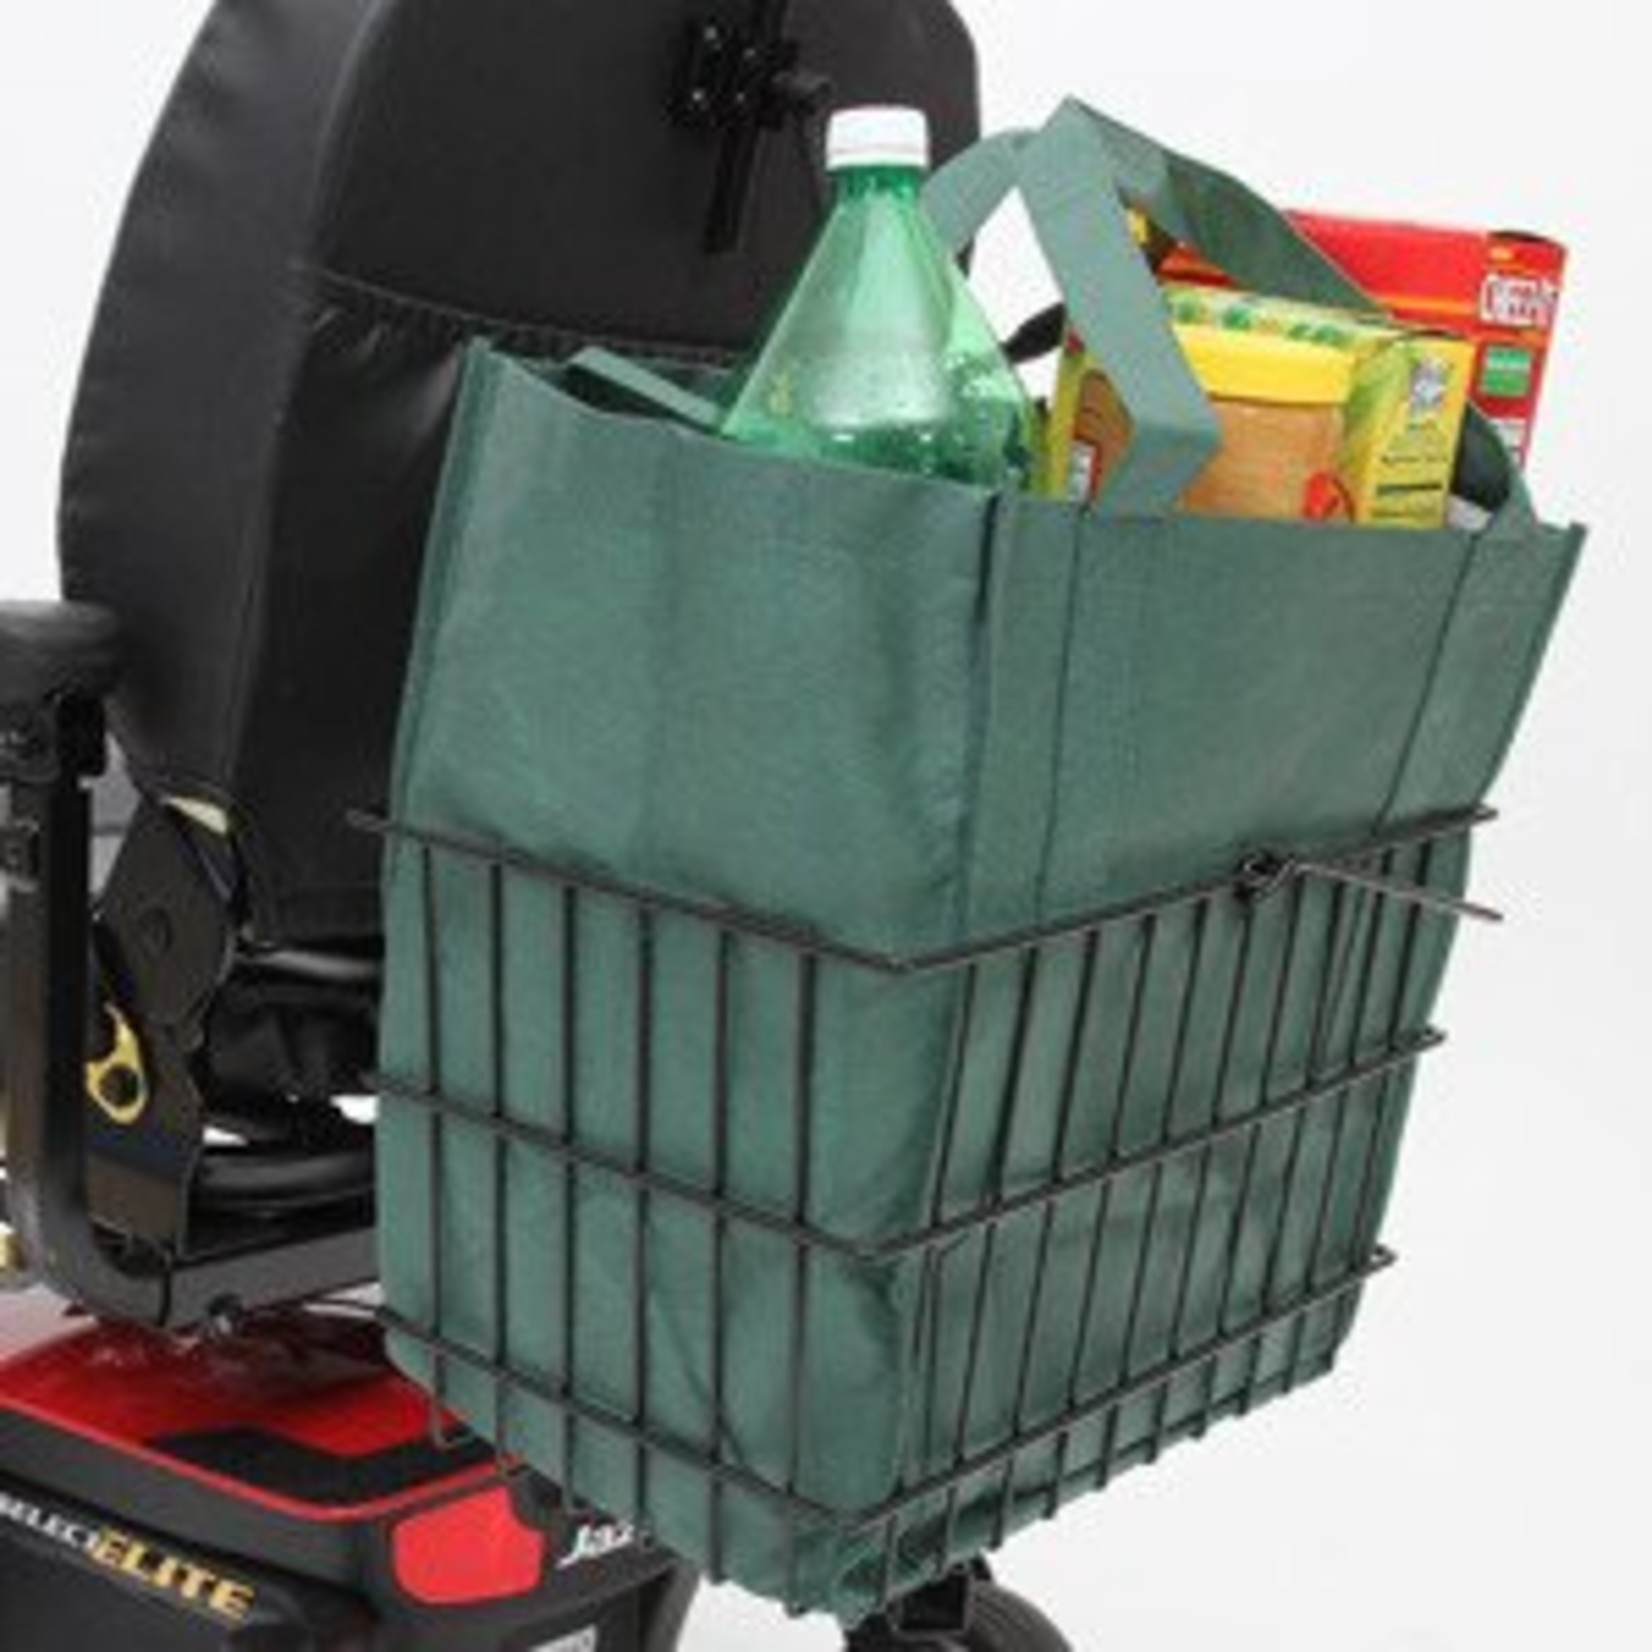 Pride Rear Basket for Power Chair (38)